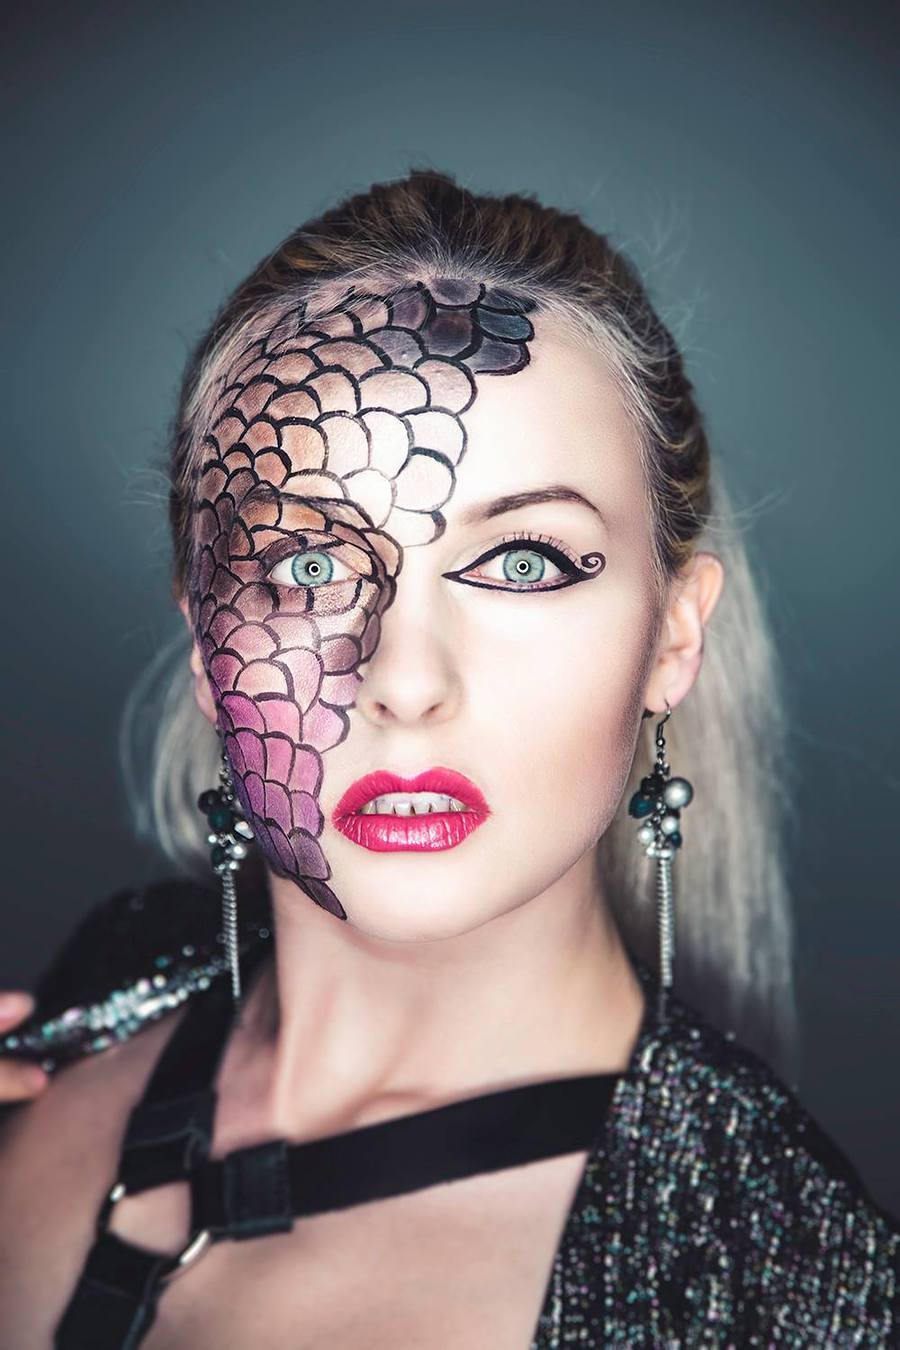 Beauty With Edge / Photography by Kevin Robertson, Model Keira Lavelle, Makeup by Keira Lavelle, Stylist Keira Lavelle / Uploaded 11th December 2016 @ 02:26 PM